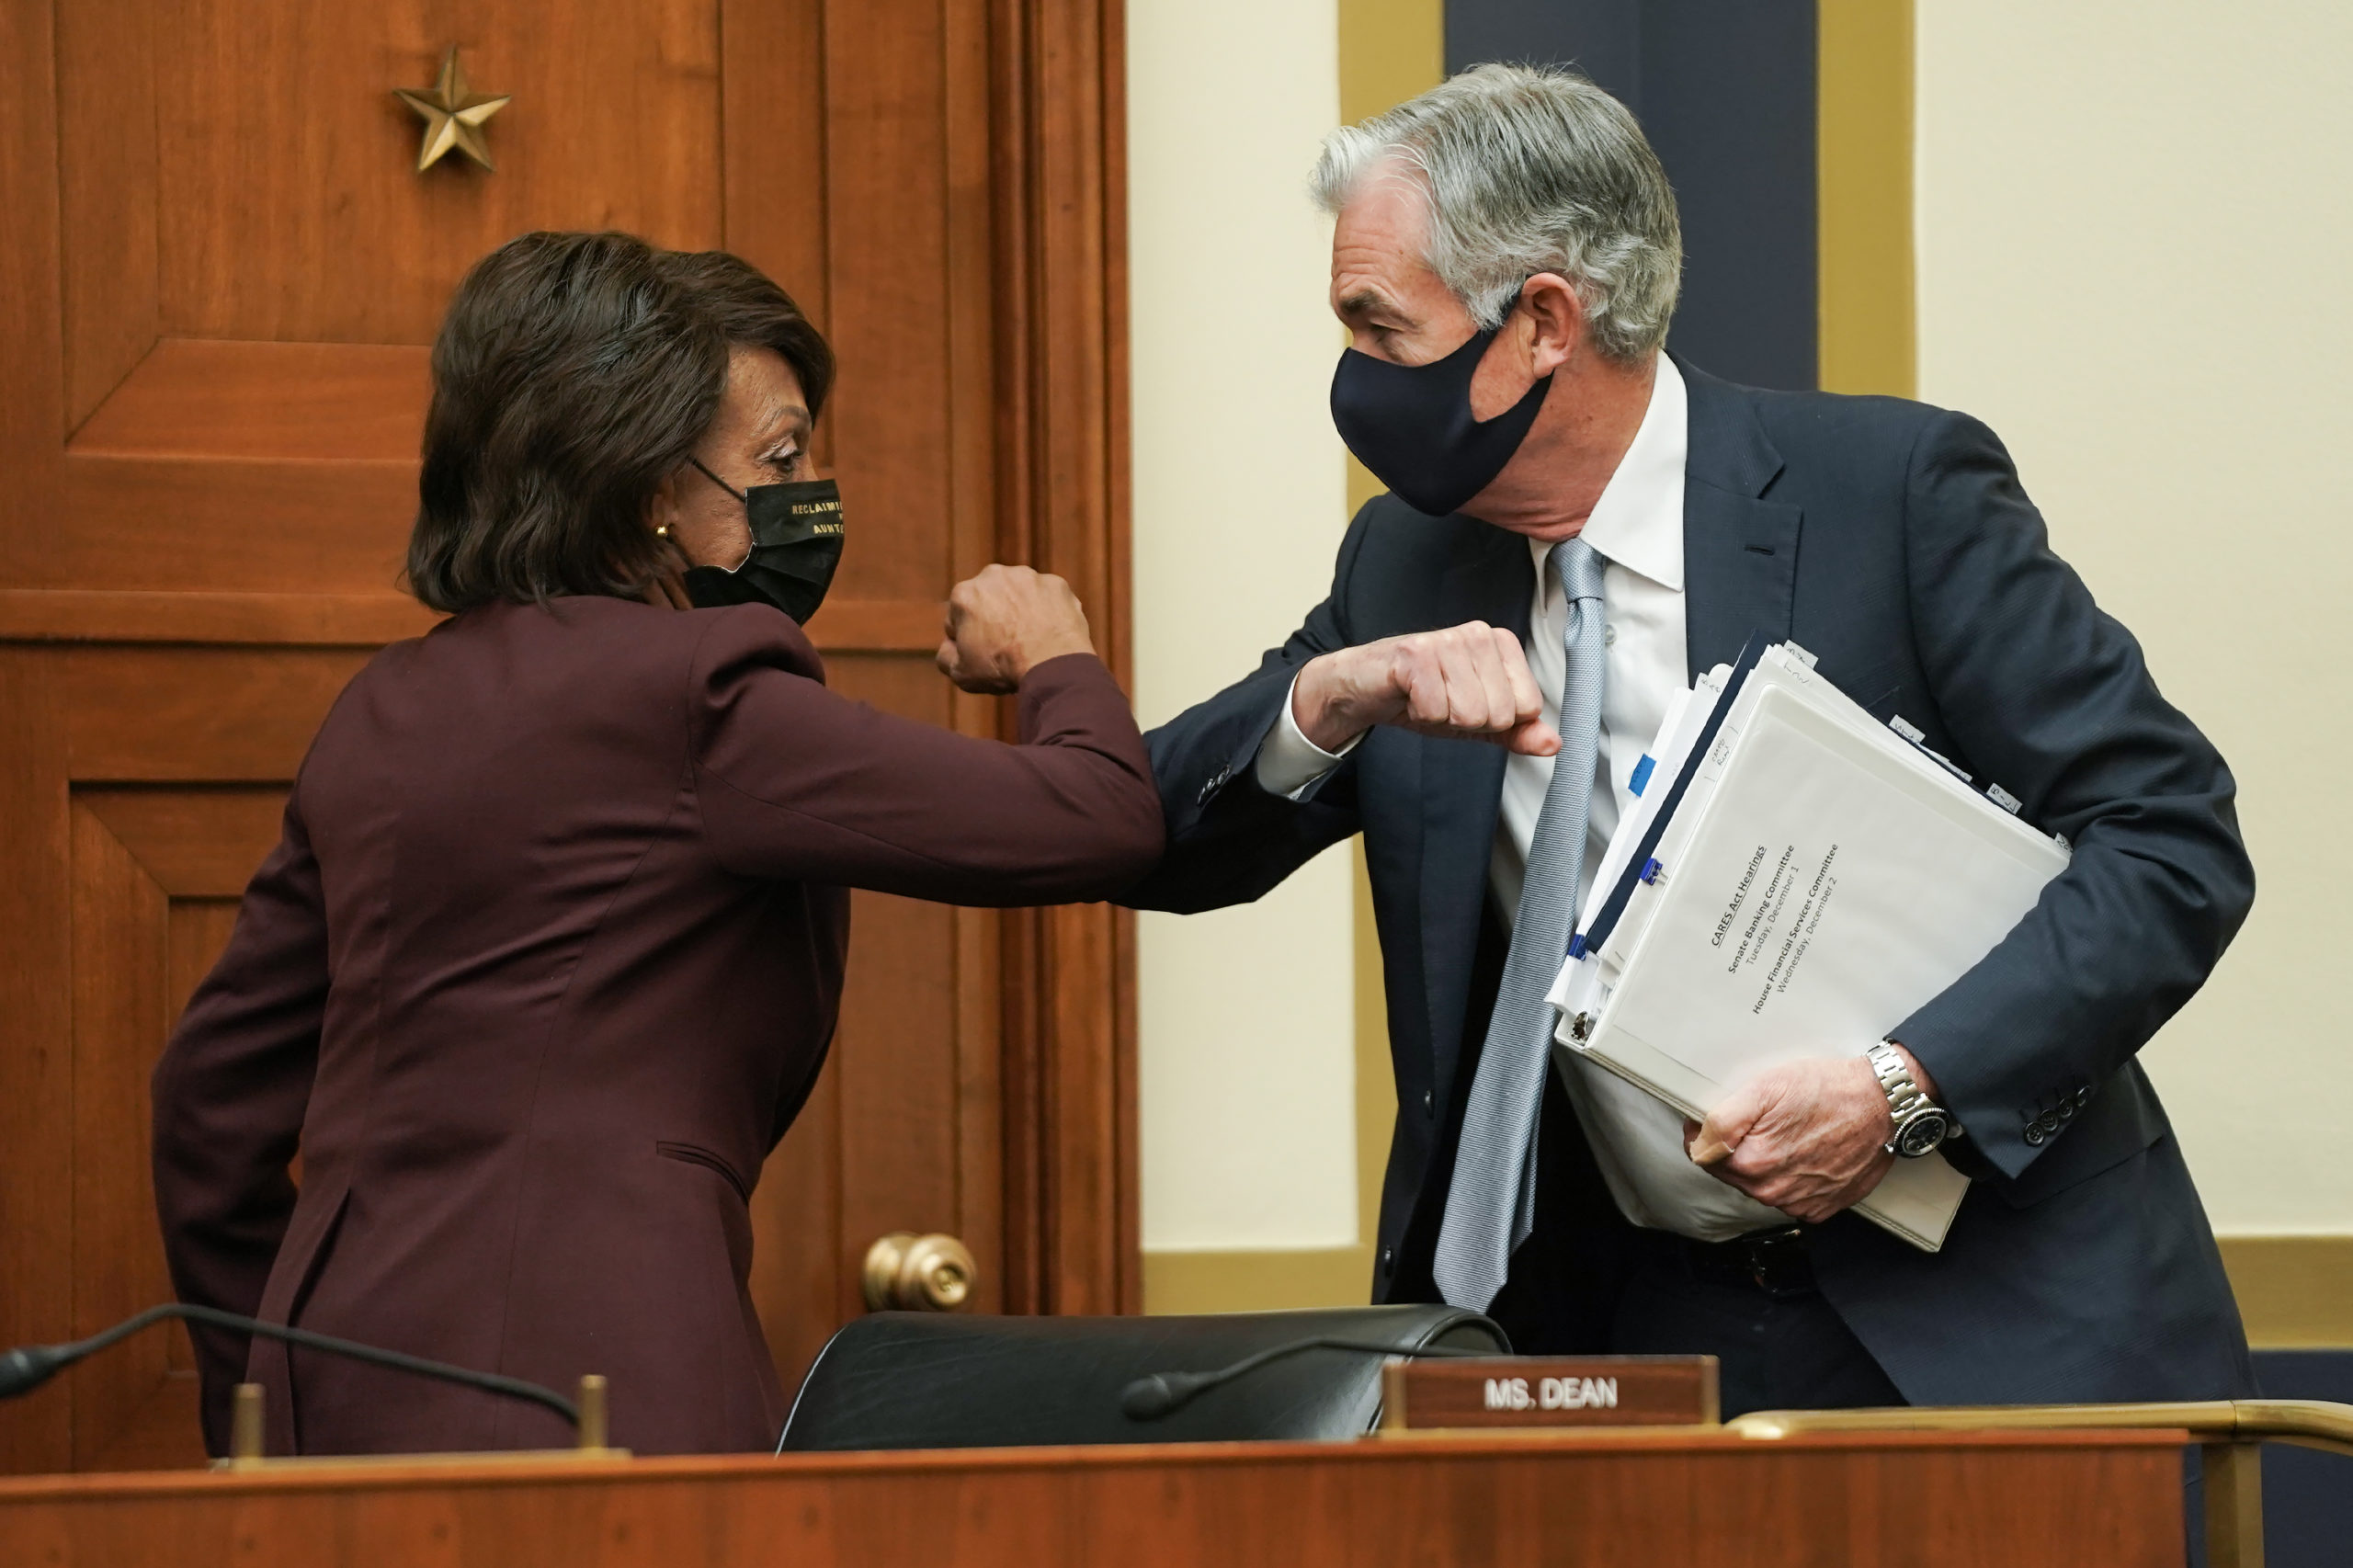 House Financial Services Committee Chairwoman Maxine Waters elbow bumps Federal Reserve Chair Jerome Powell in December. (Getty Images)